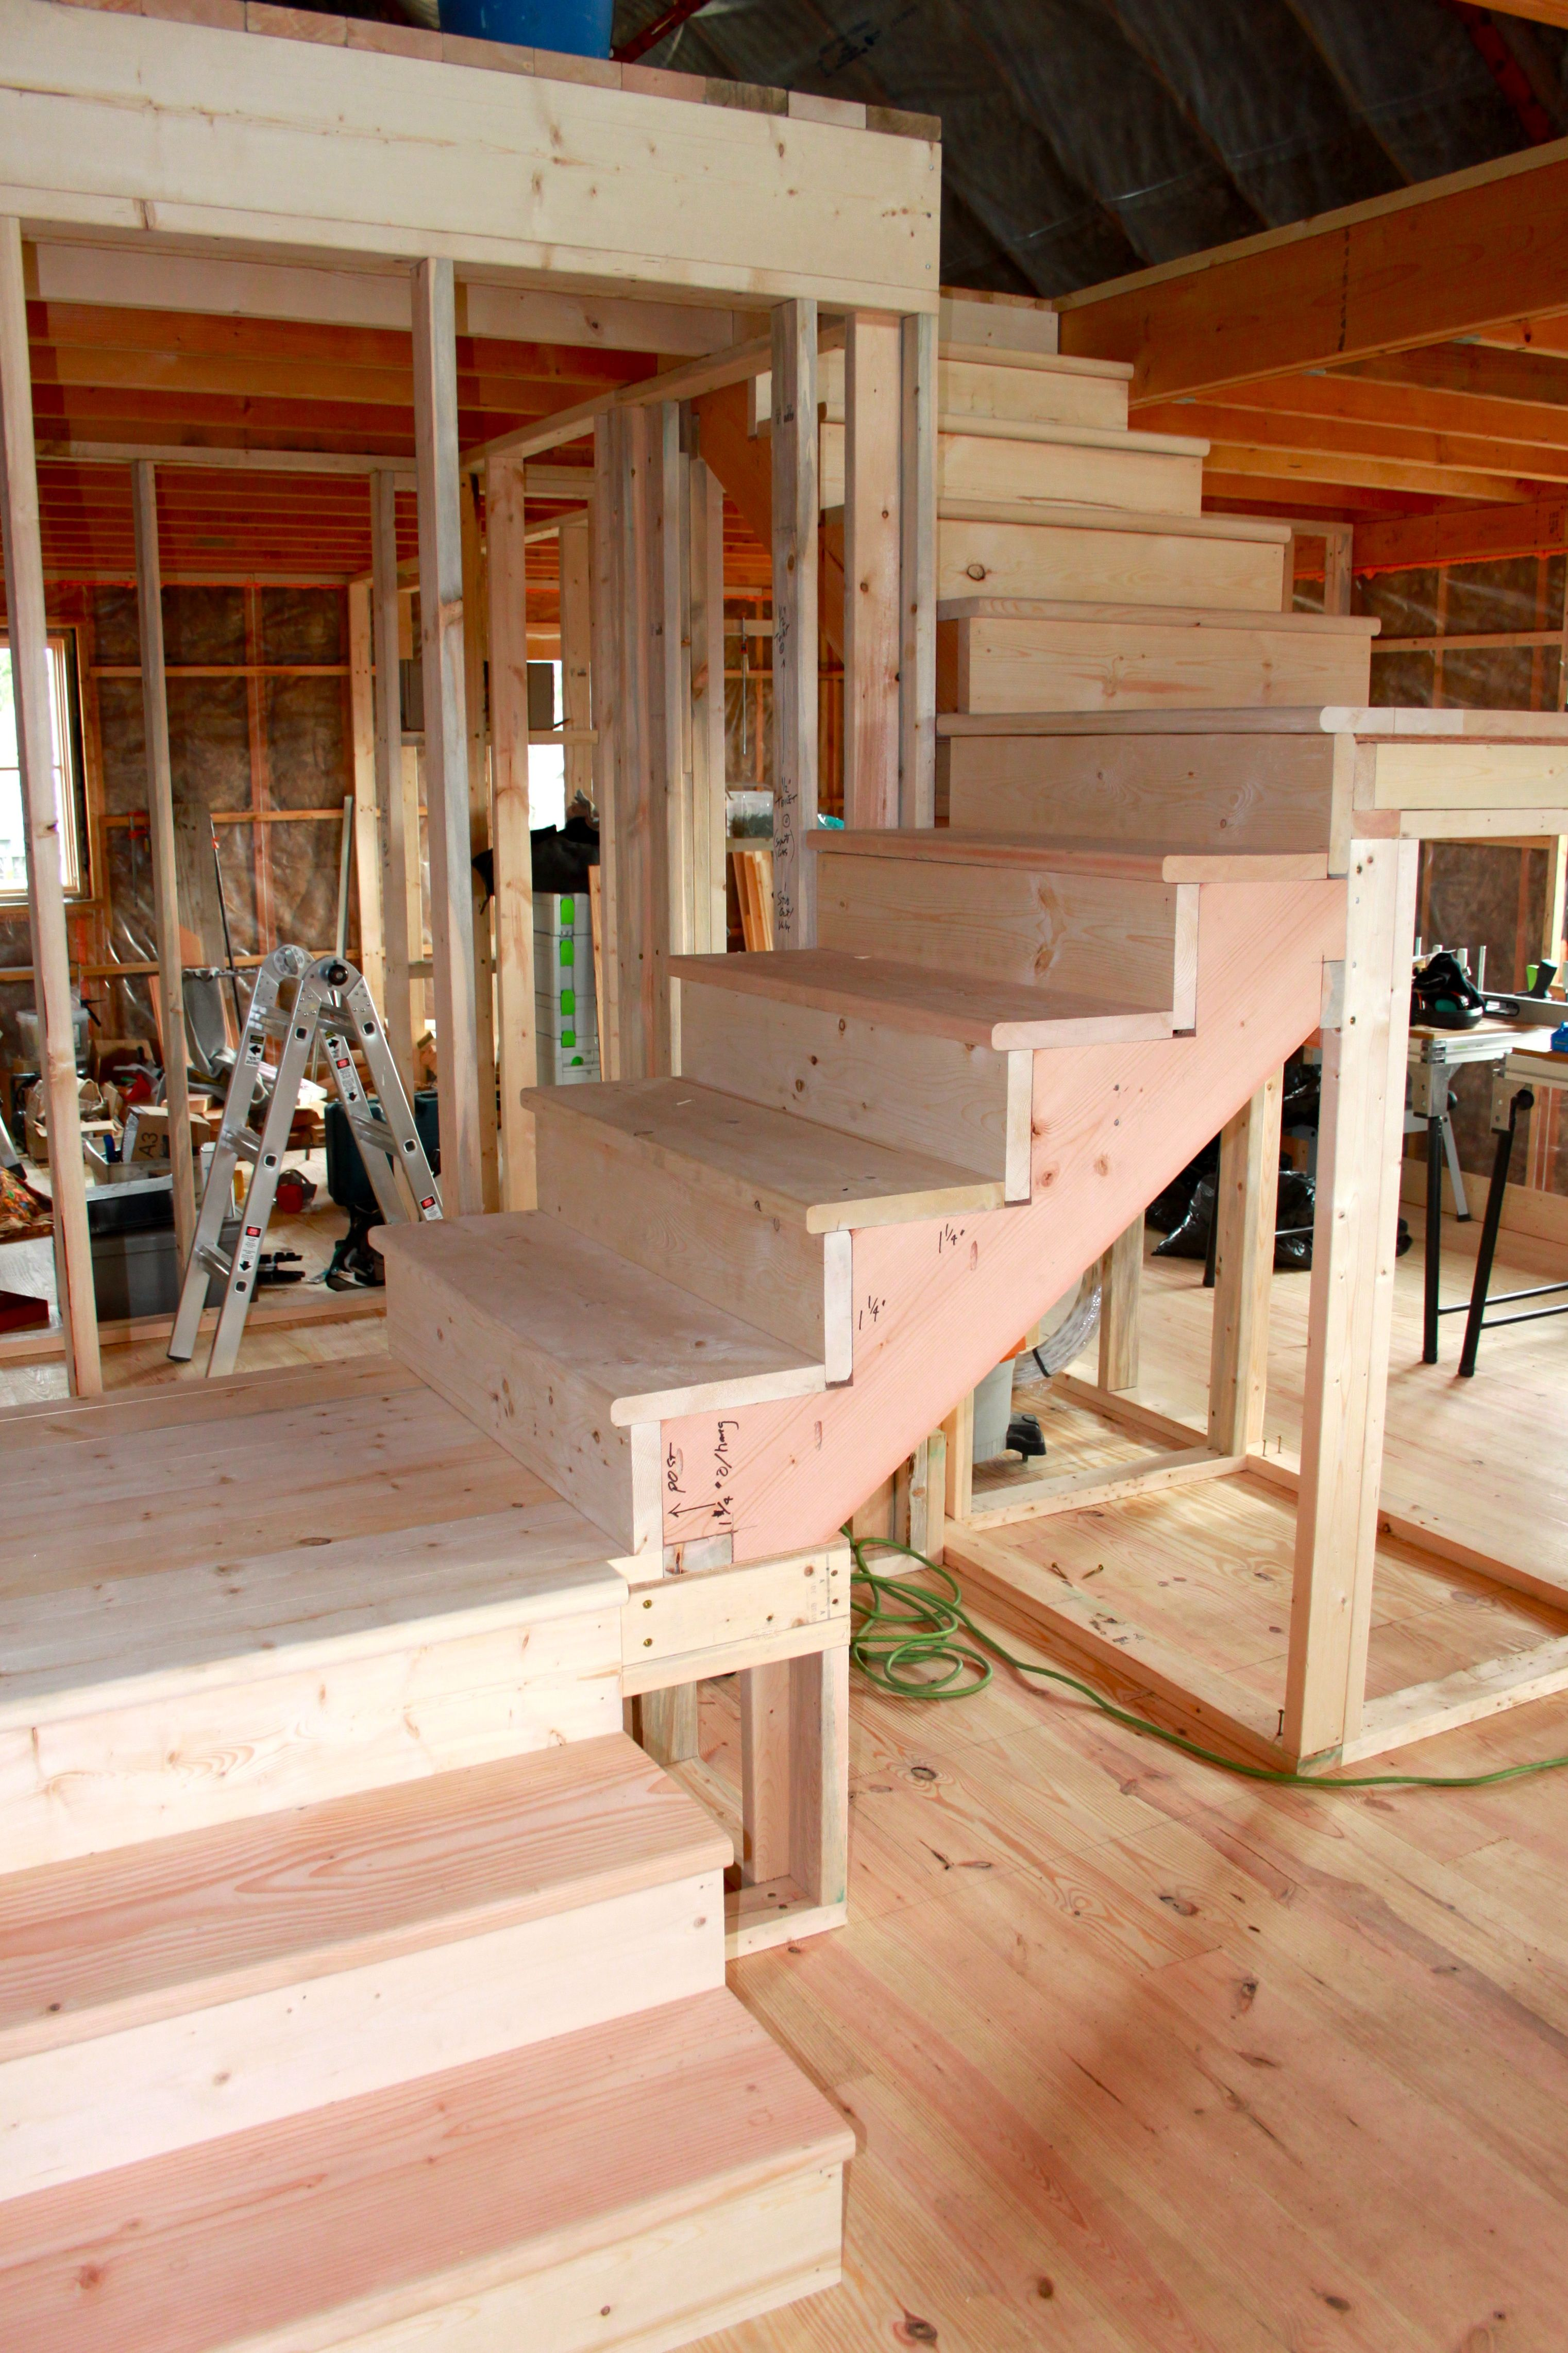 January basement stairs cabin plans tiny also best house ideas images in diy for home bath rh pinterest